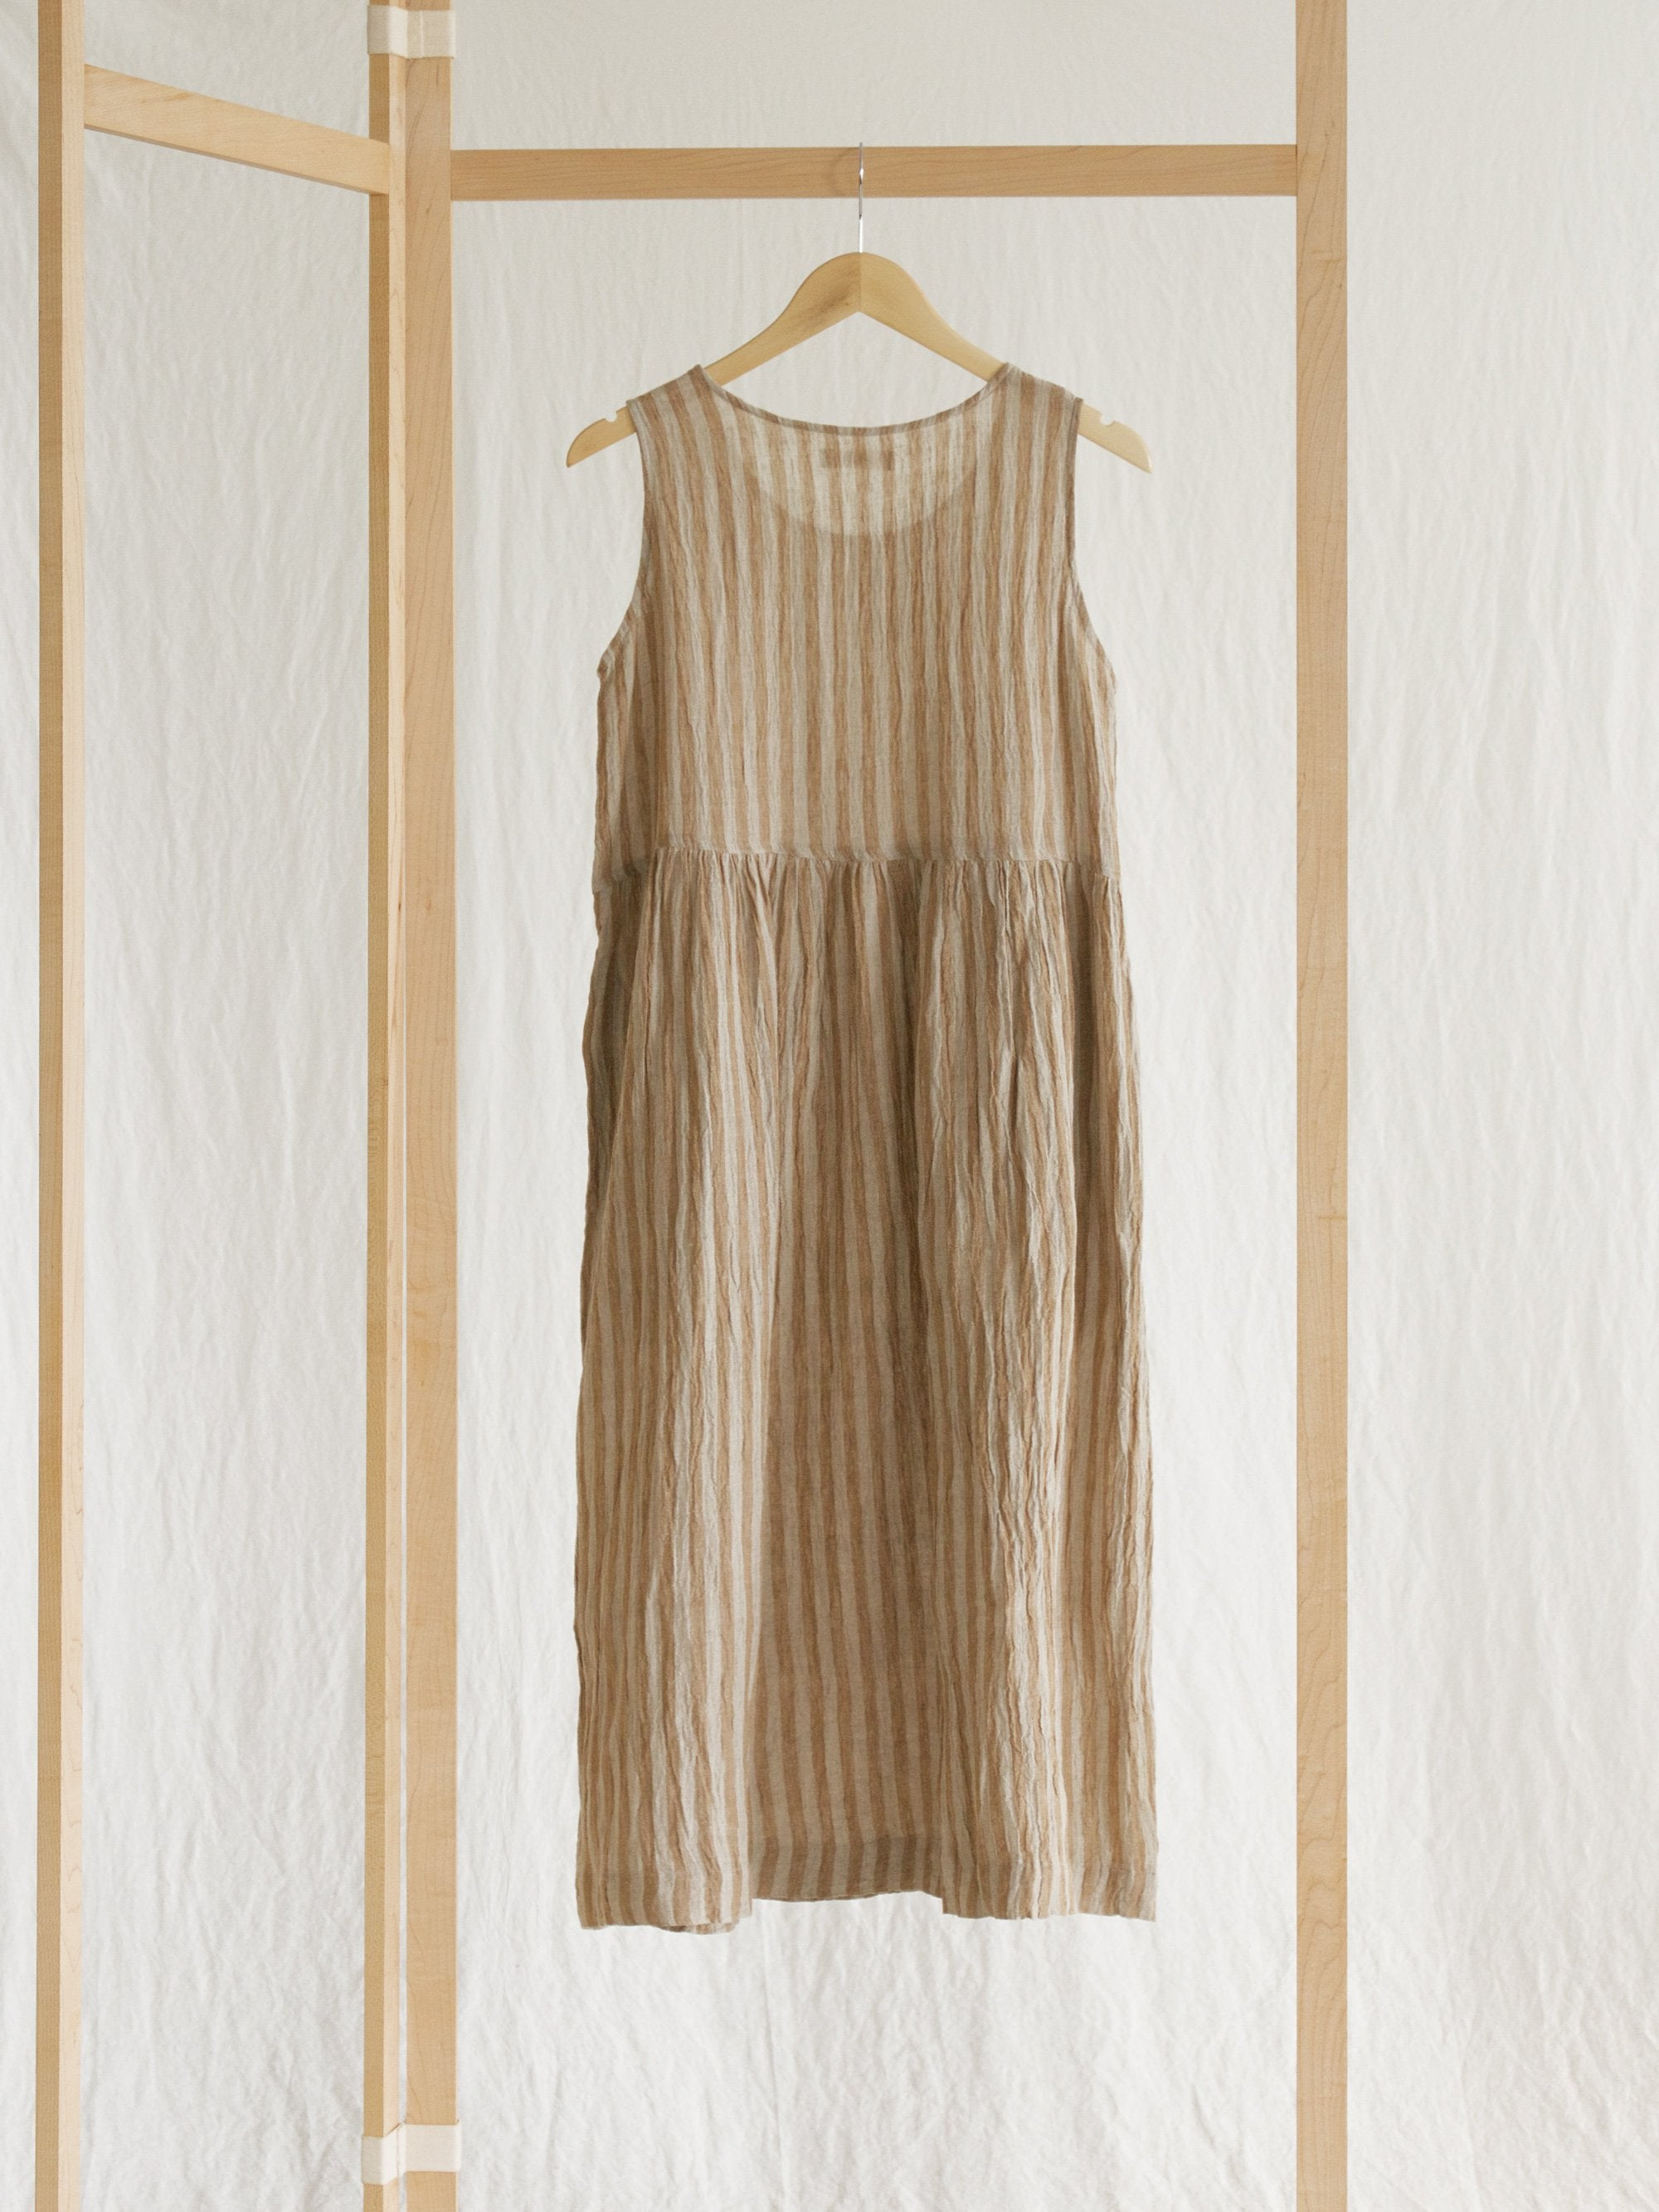 Namu Shop - Ichi Antiquites Sleeveless Linen Dress - Camel Stripe